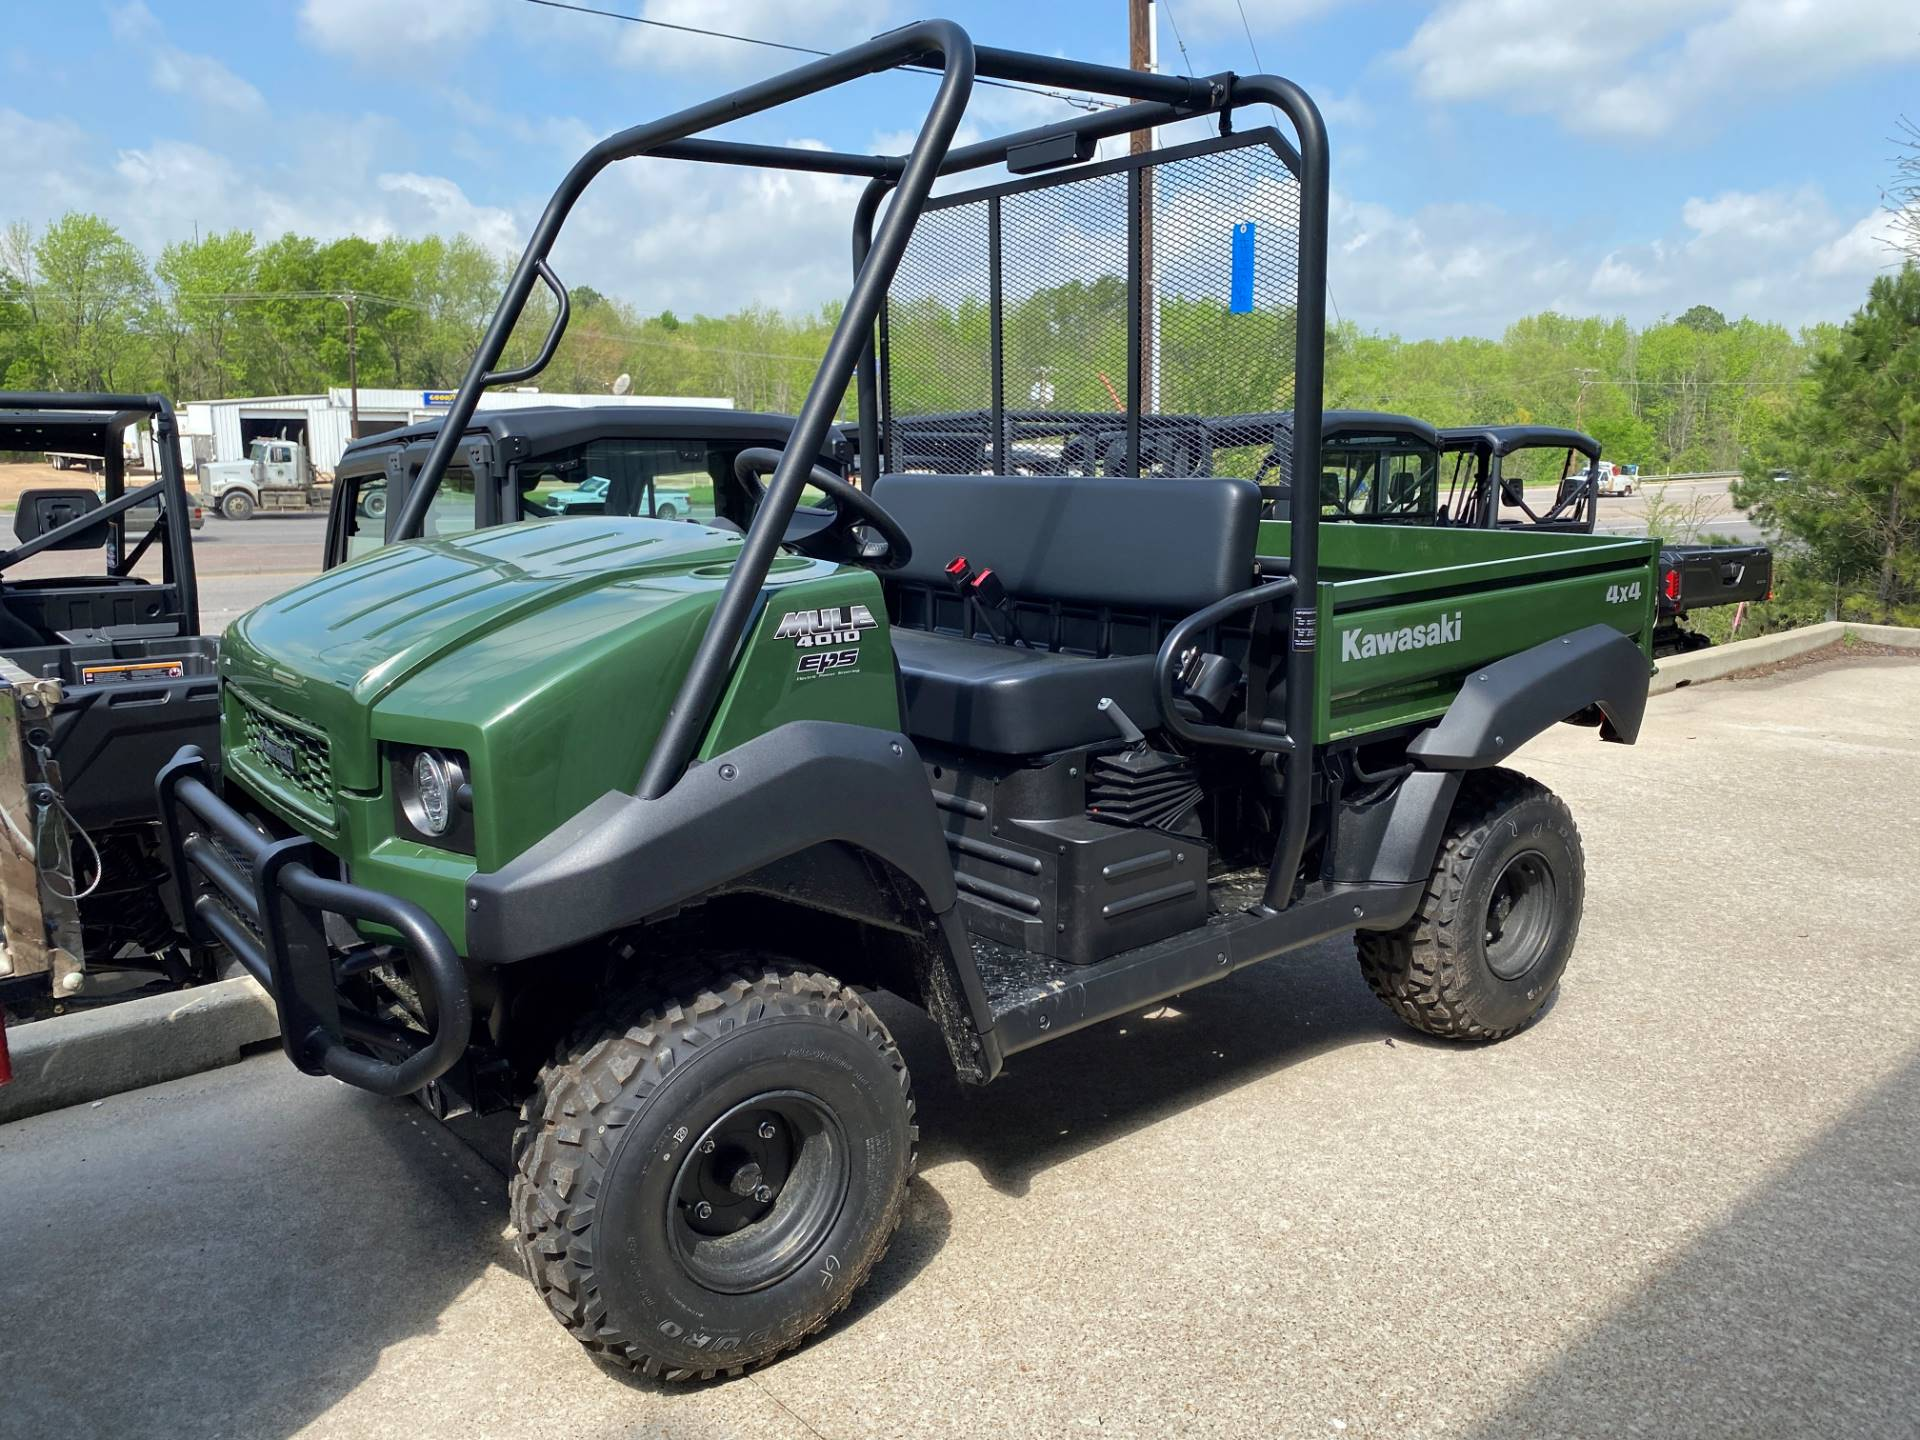 2020 Kawasaki Mule 4010 4x4 in Tyler, Texas - Photo 1